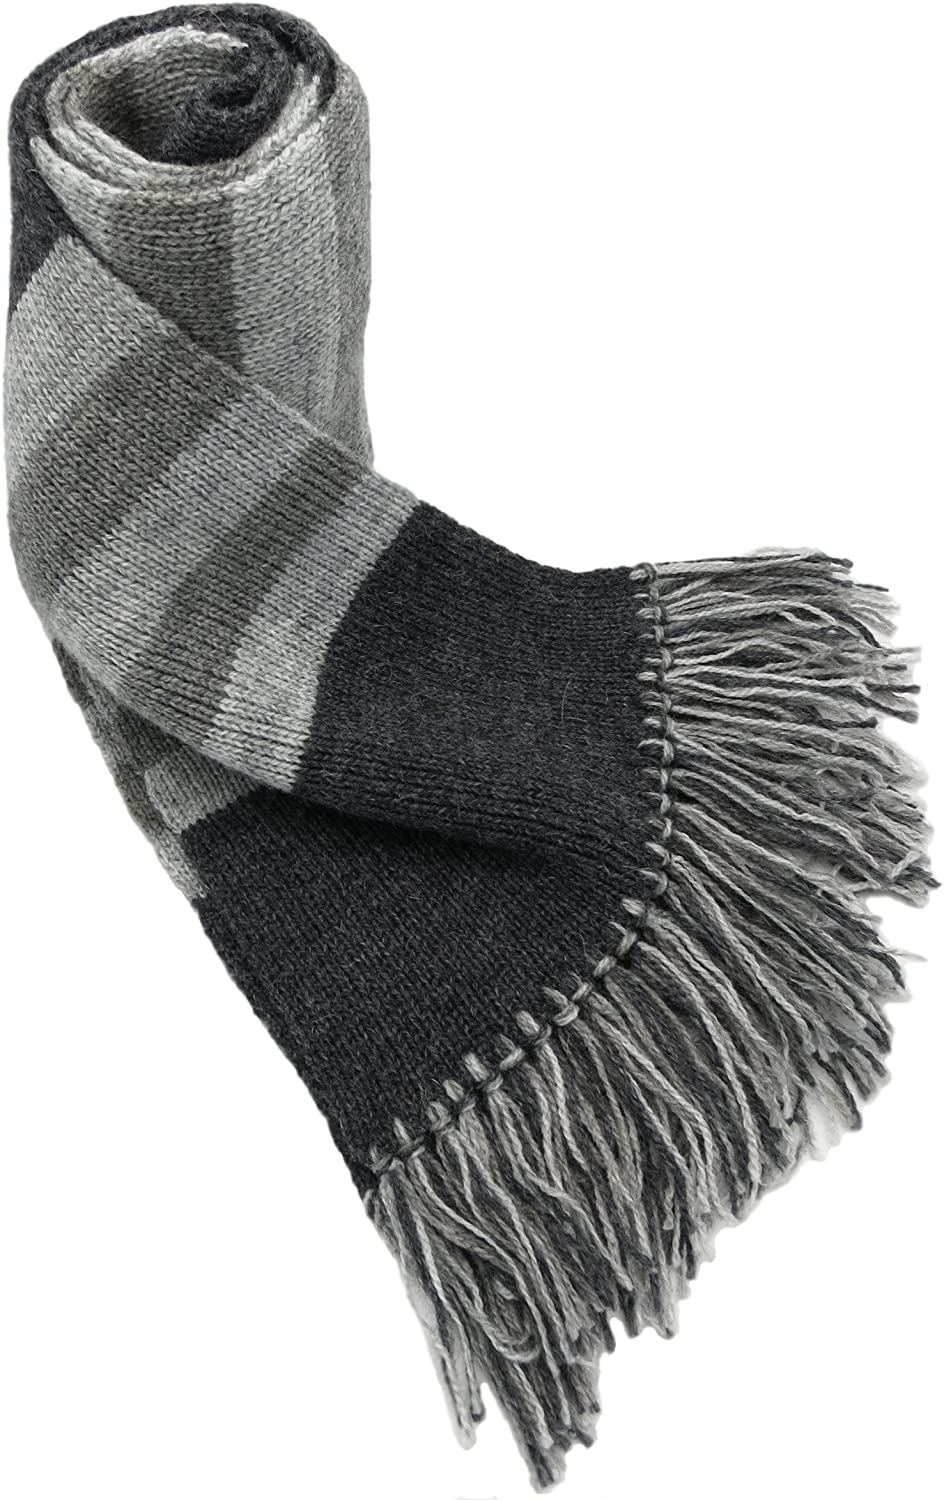 MADE TO ORDER IN ANY COLOR - Alpaca and Wool Winter Scarf for Men